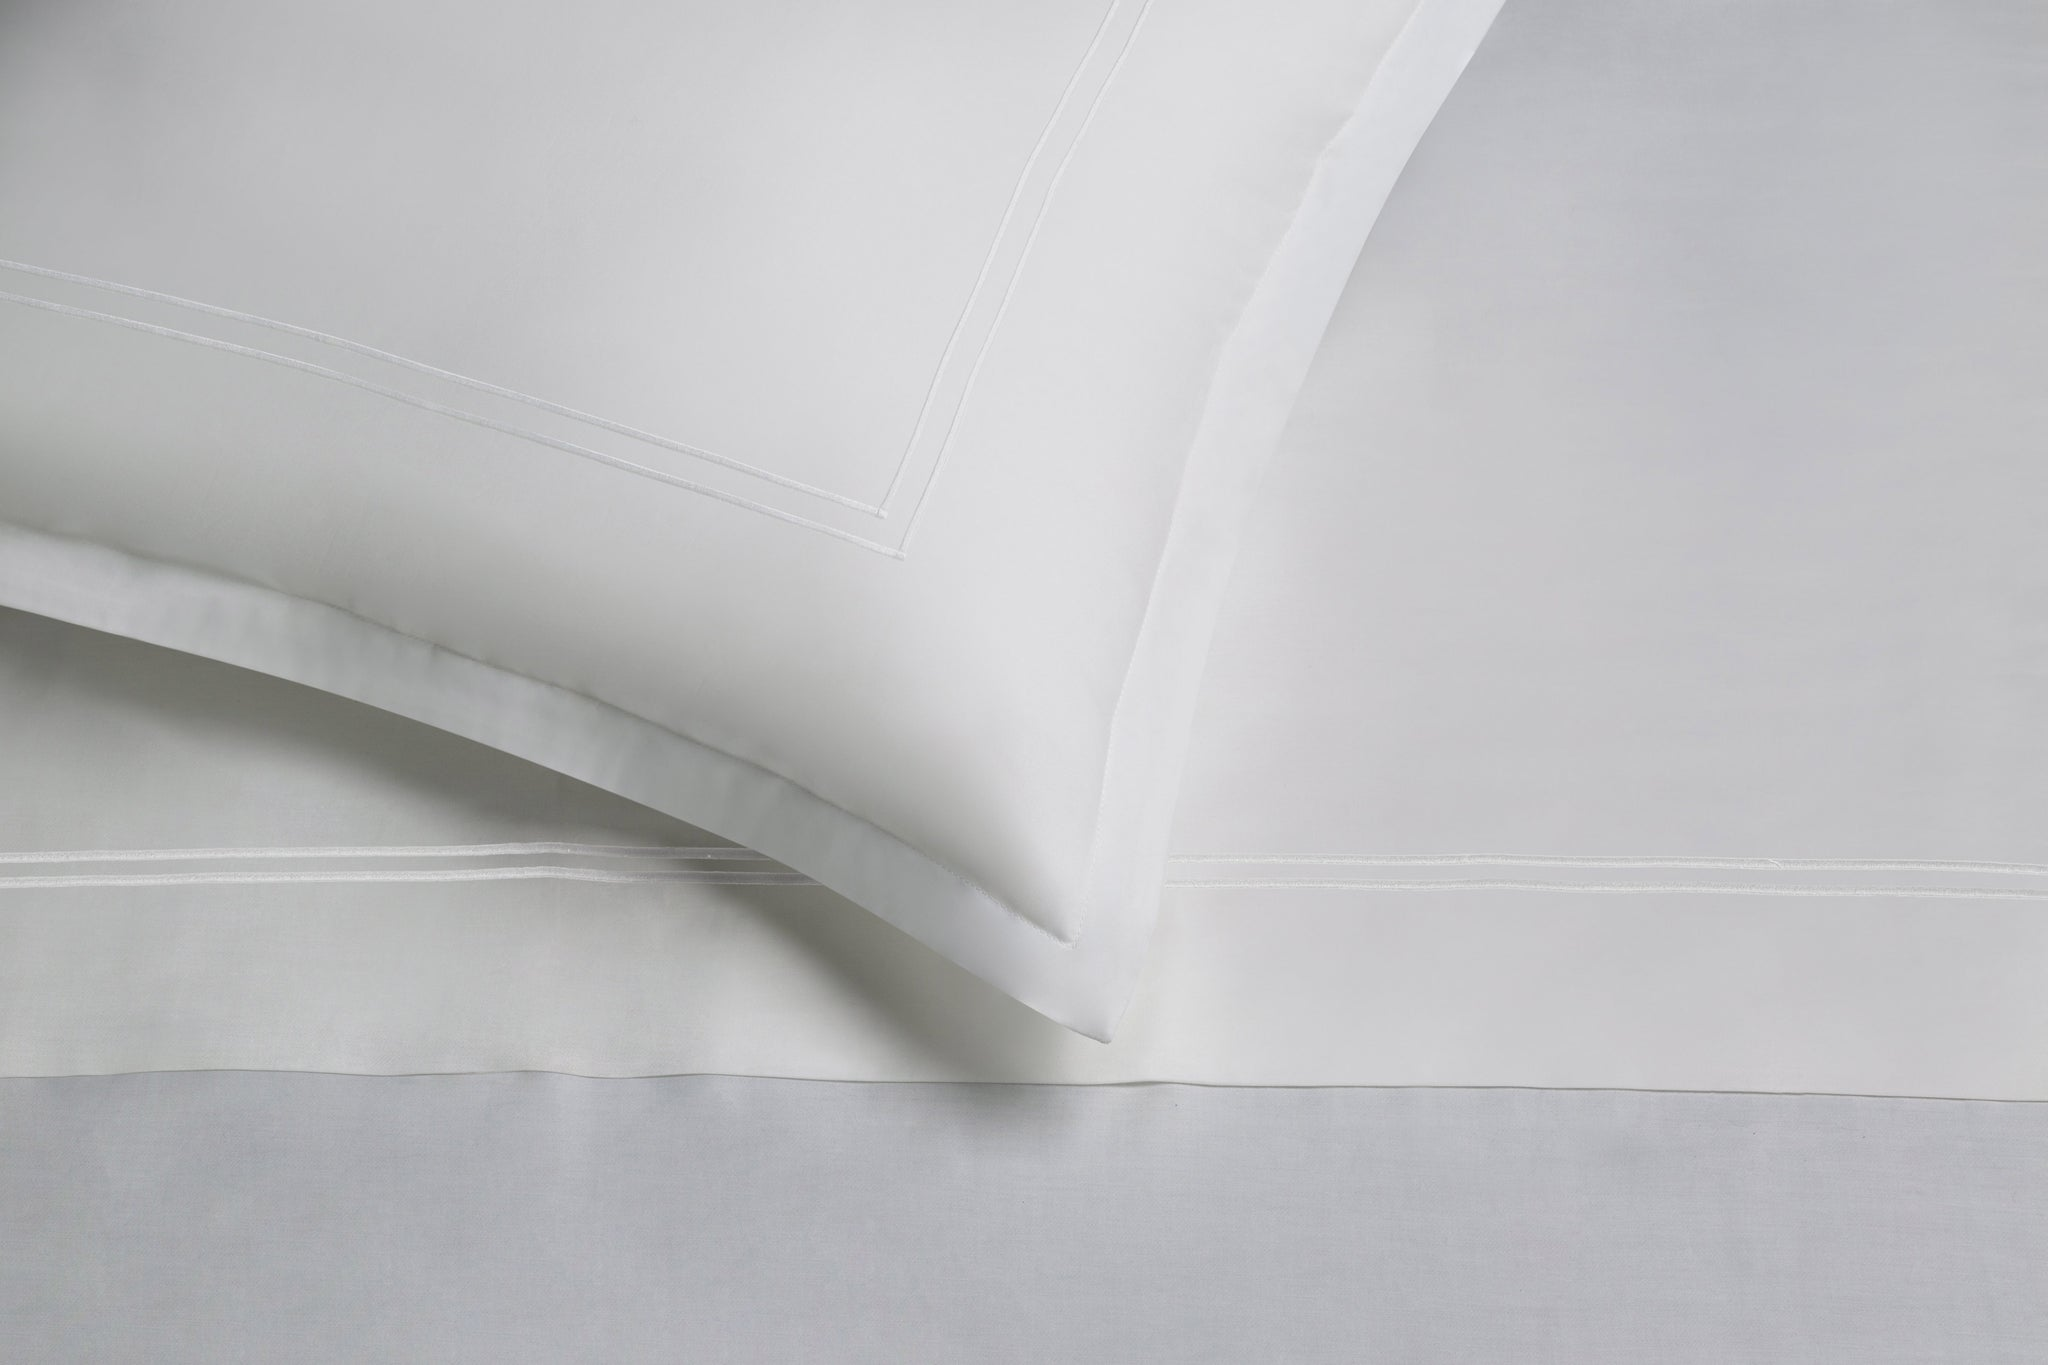 Luxury Percale Double Stitch Bedding - thumbnail 2